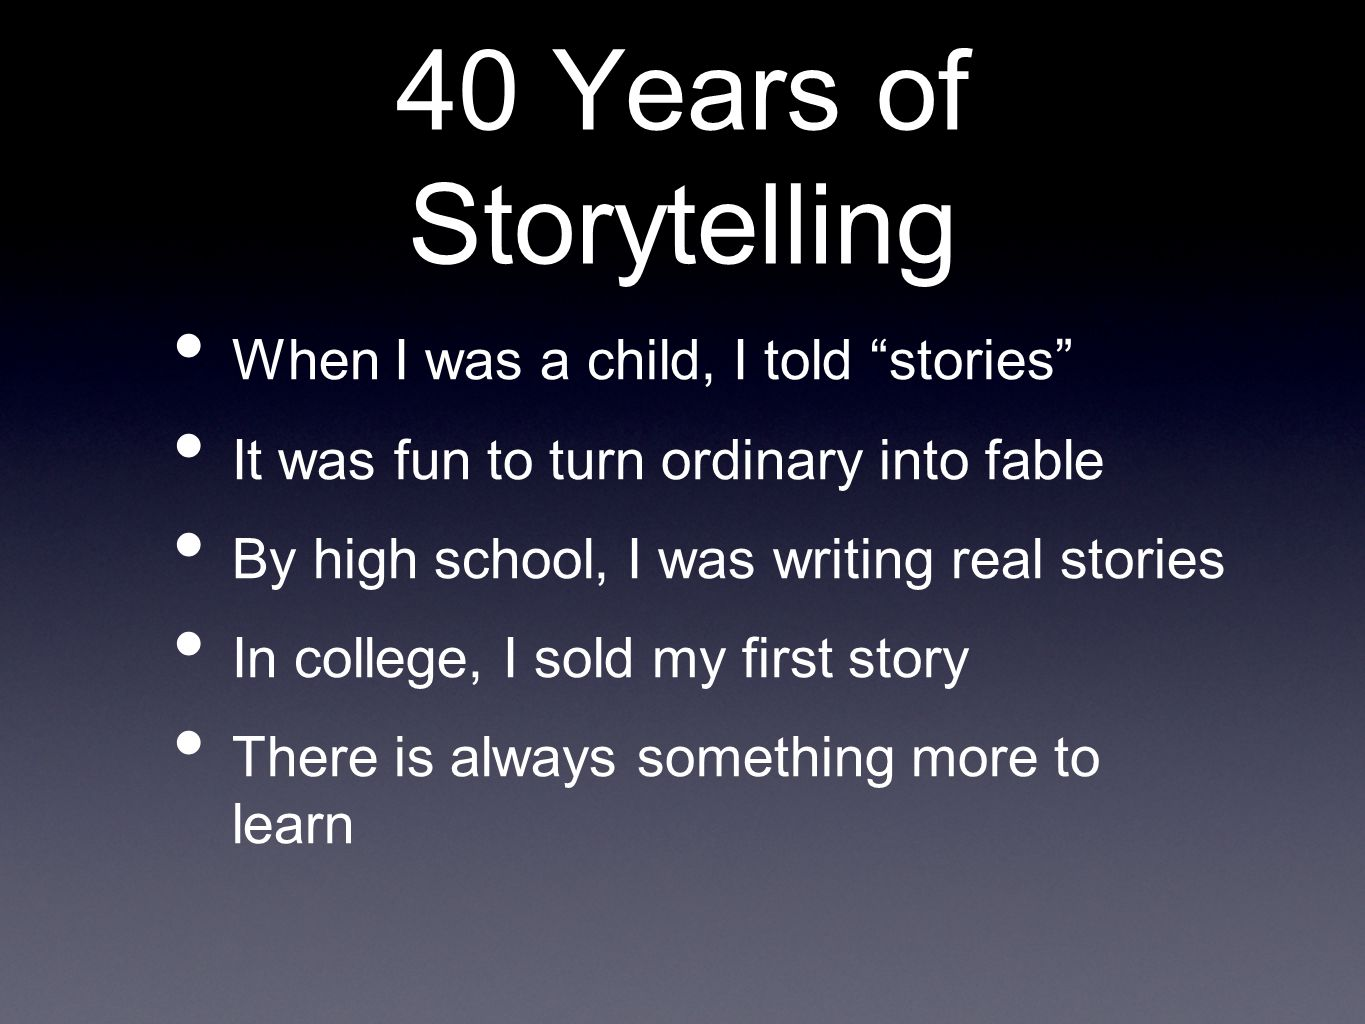 40 Years of Storytelling When I was a child, I told stories It was fun to turn ordinary into fable By high school, I was writing real stories In college, I sold my first story There is always something more to learn